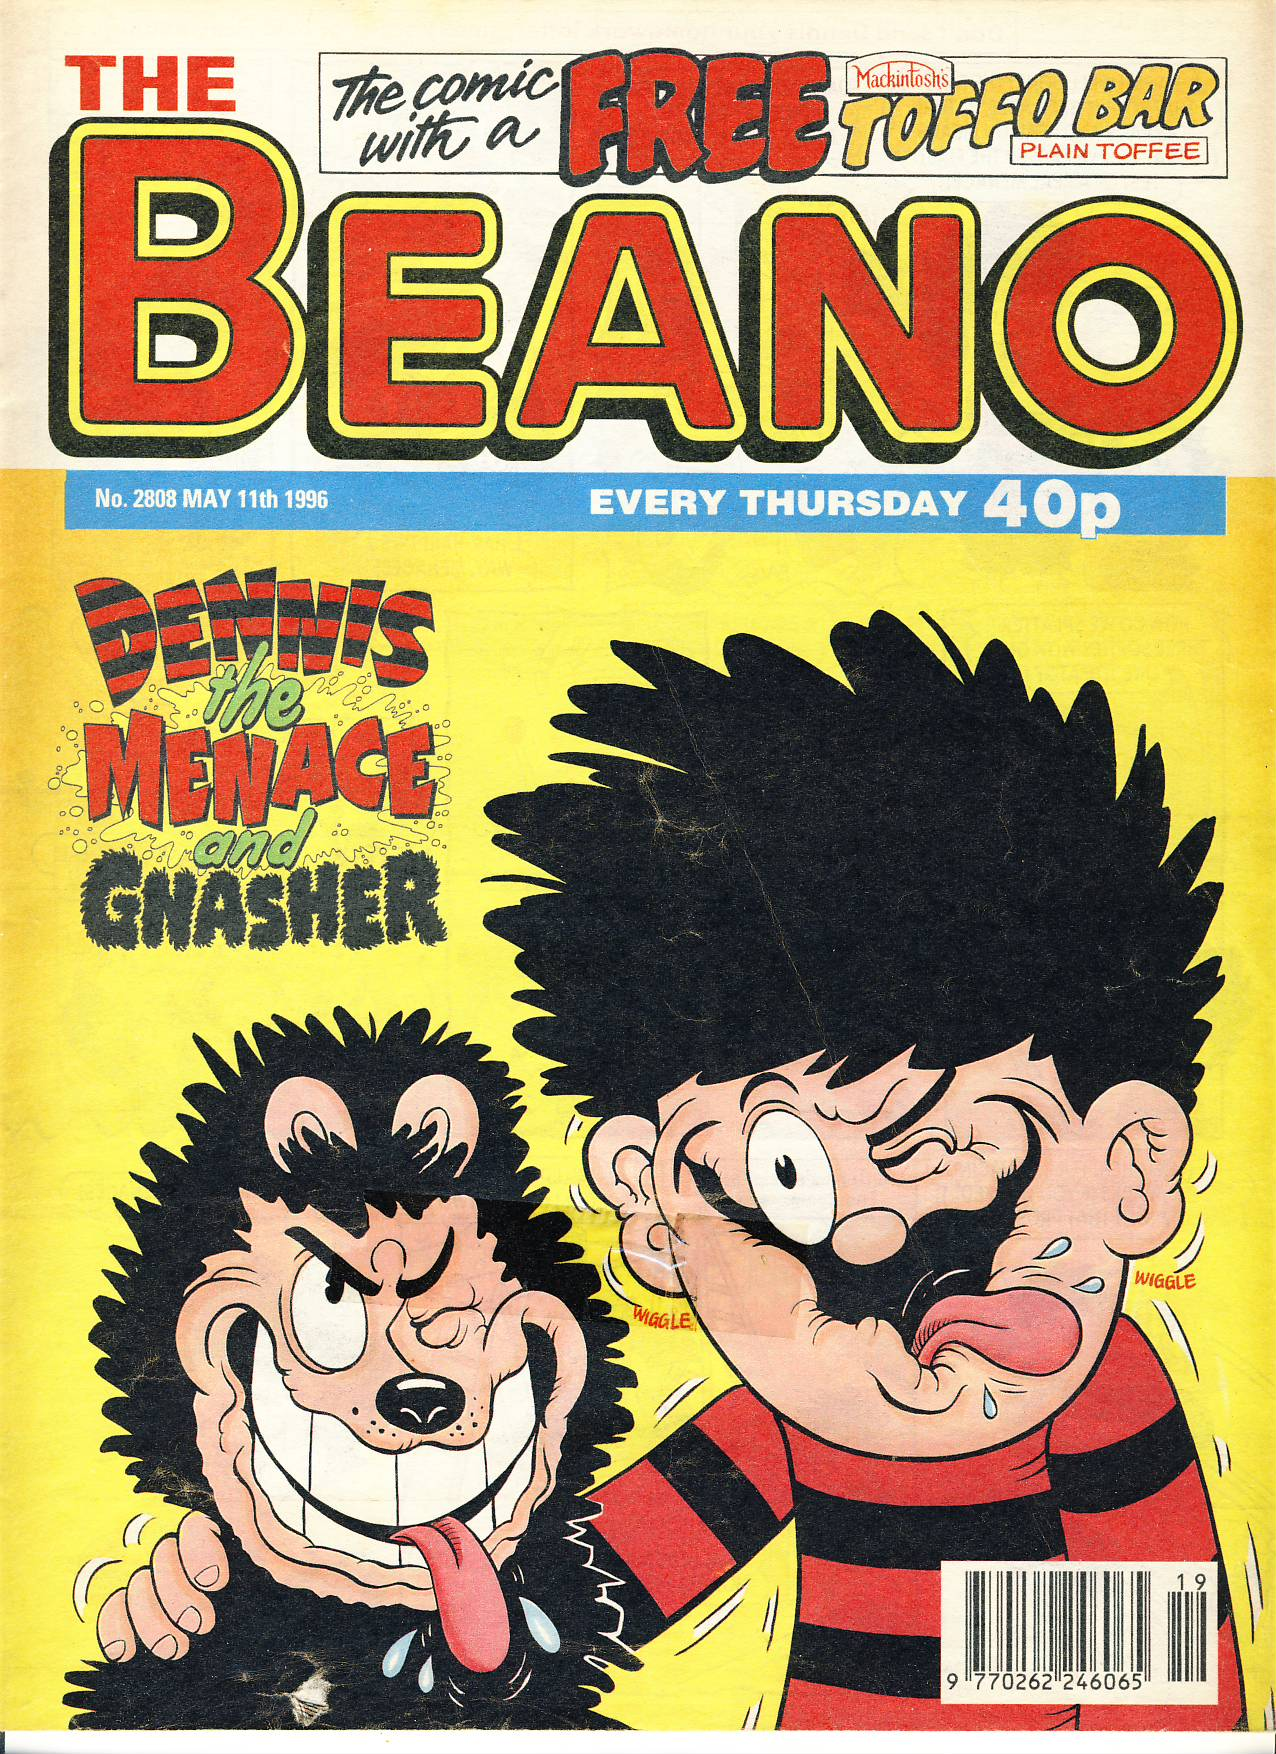 1996 May 11th BEANO vintage comic Good Gift Christmas Present Birthday Anniversary ref203 a pre-owned item in very good read condition.